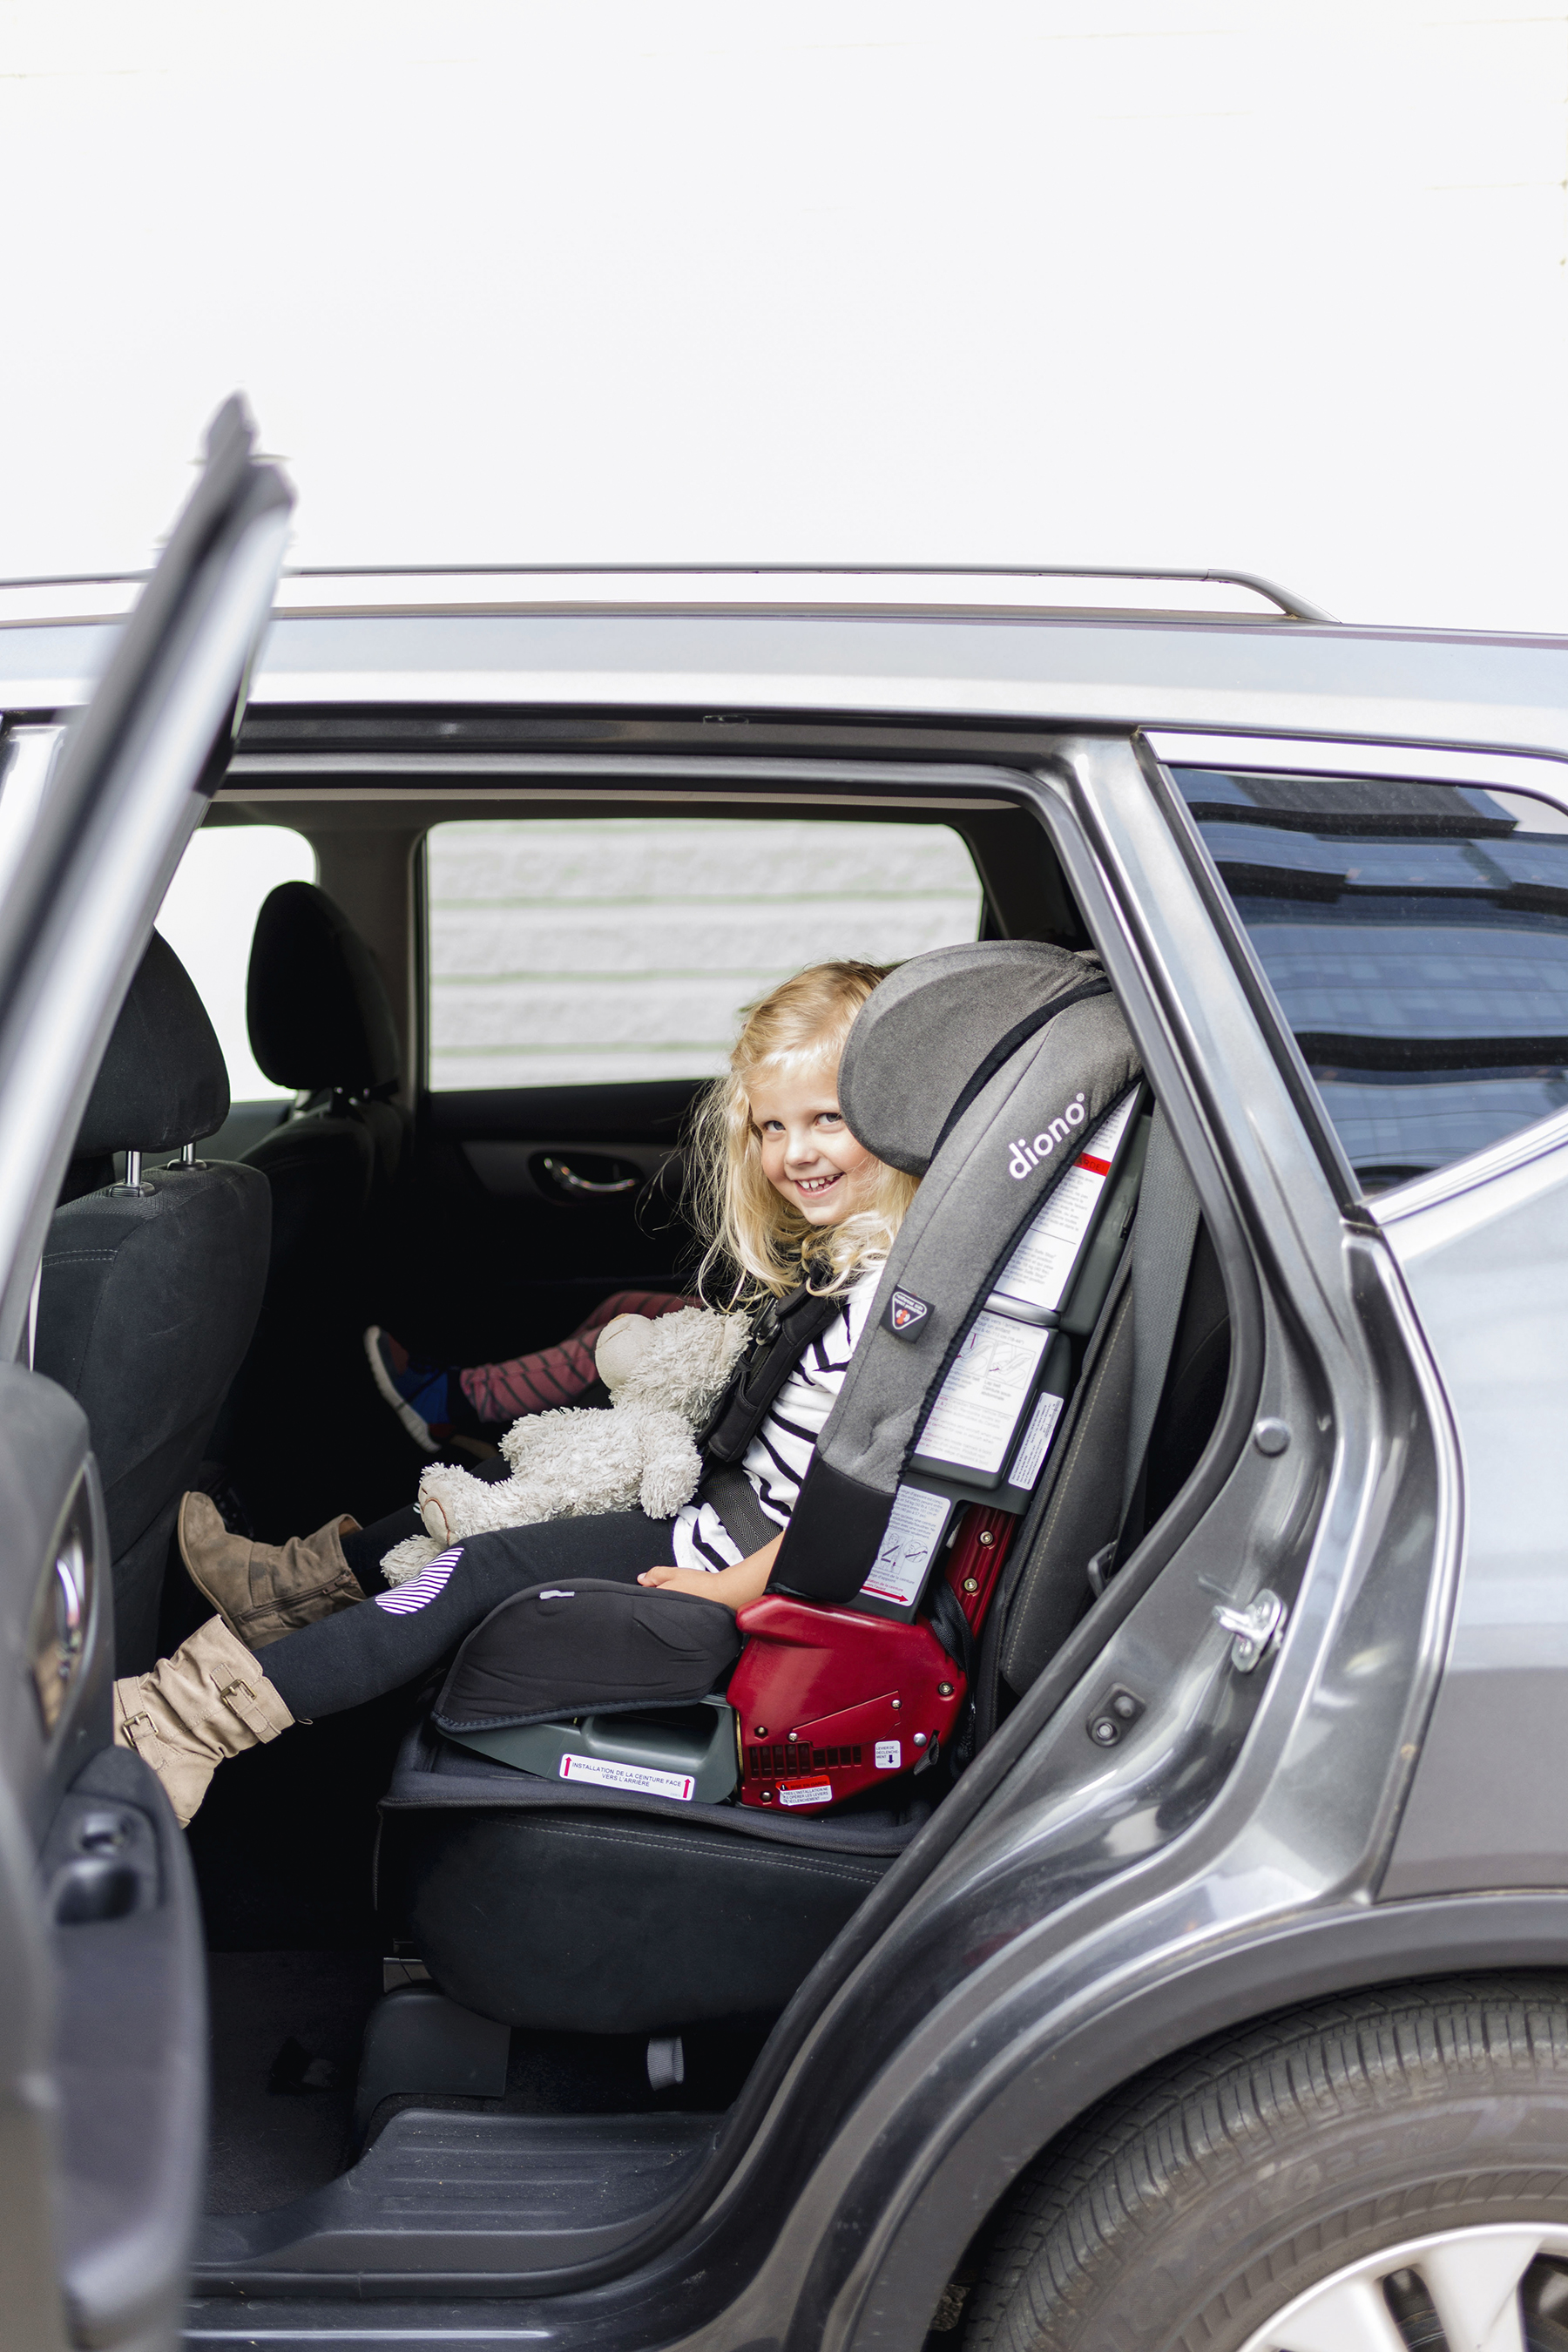 Diono Radian installed in Nissan Rogue | Top 10 tips for road tripping with toddlers + preschoolers